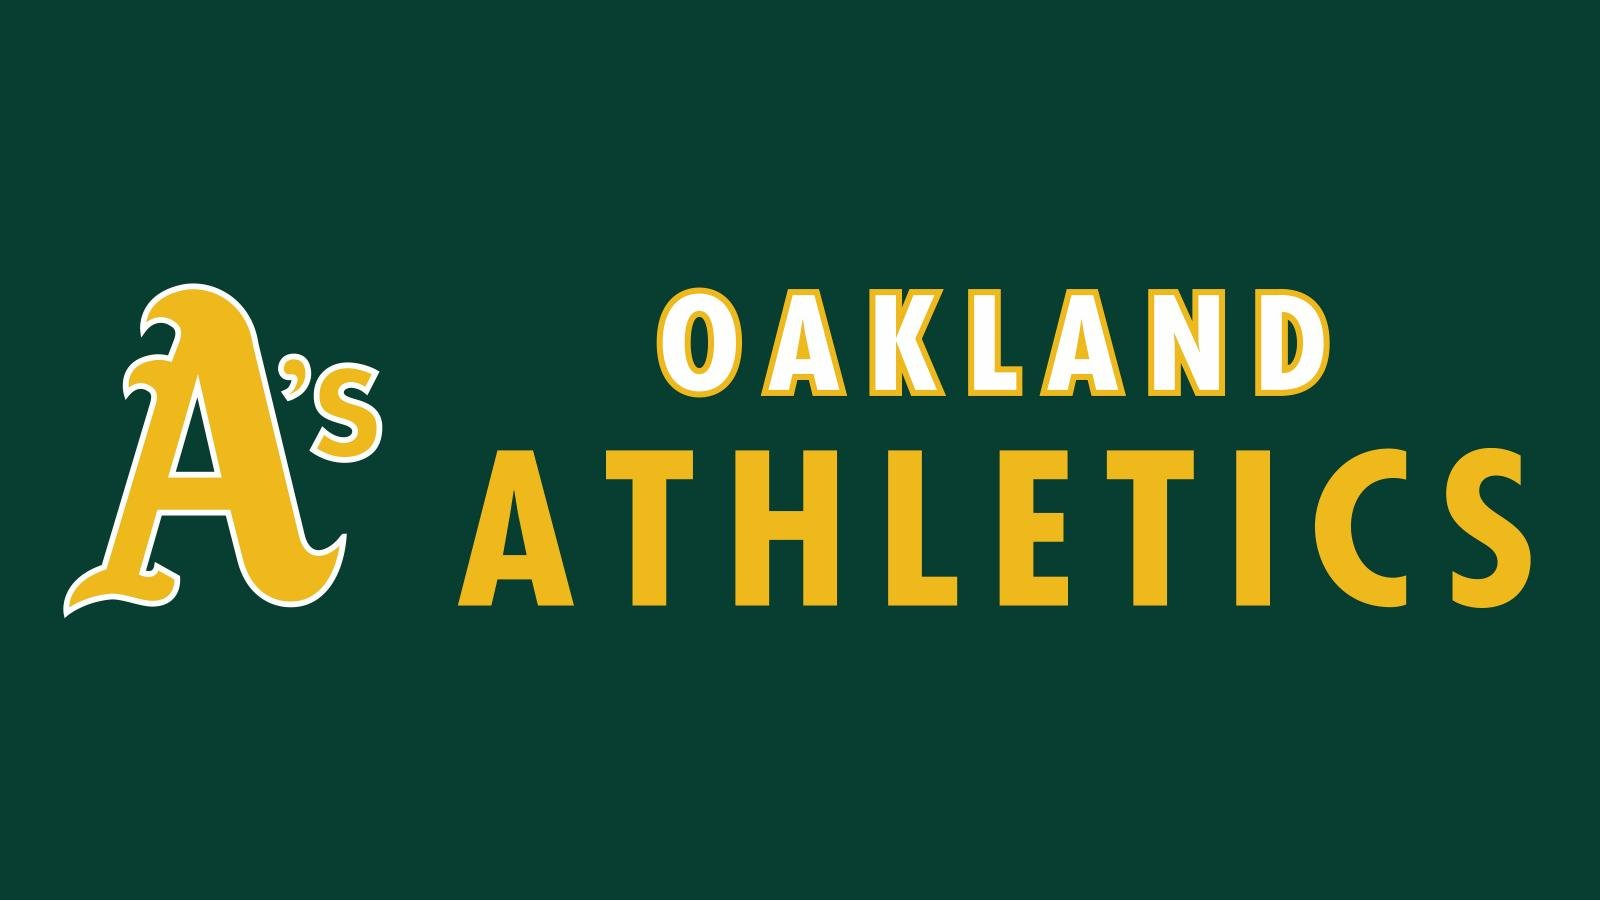 Download hd 1600x900 Oakland Athletics desktop background ID:310463 for free